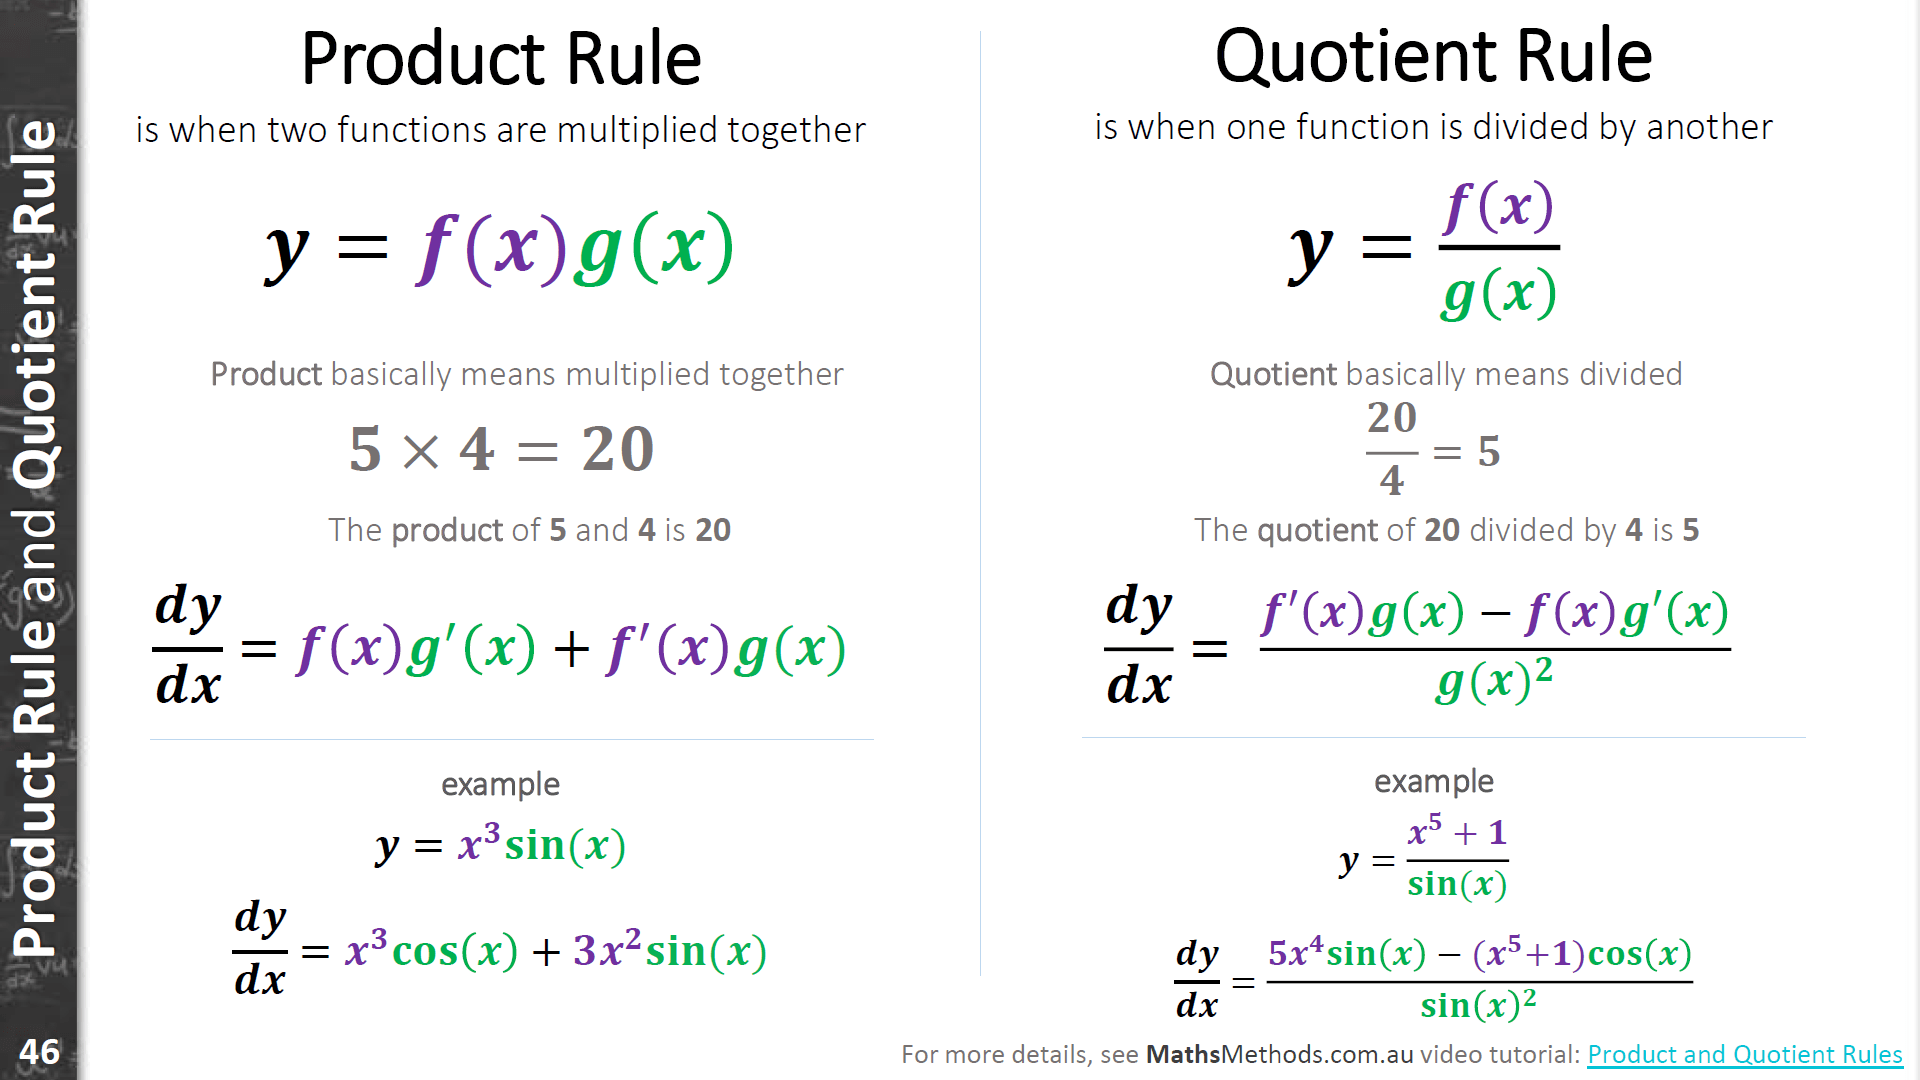 Product Rule And Quotient Rule In Maths Methods